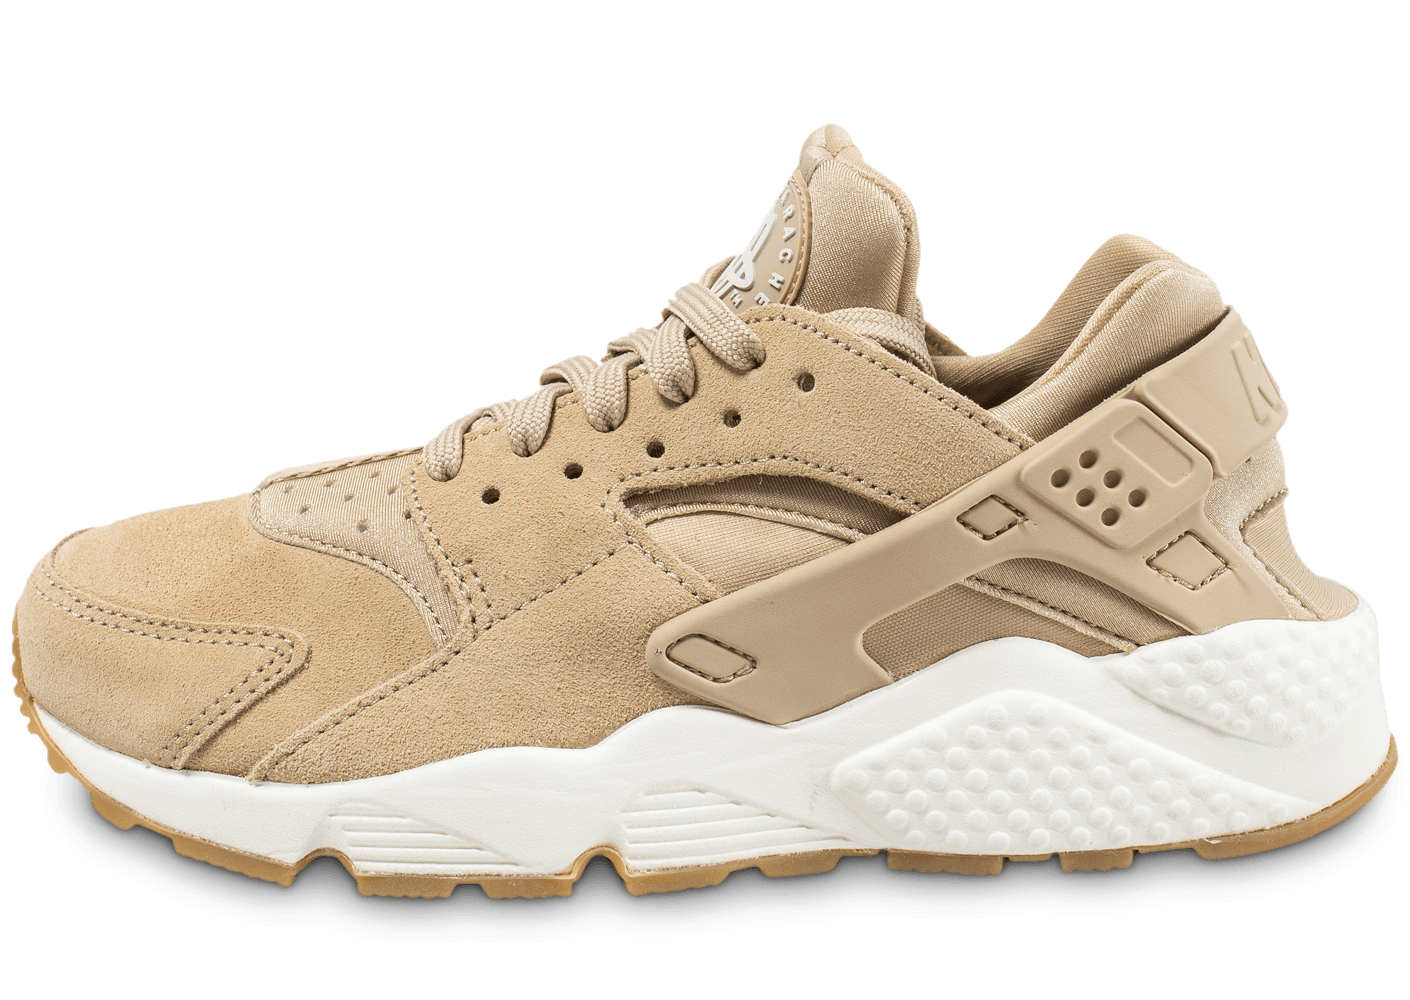 nike air huarache run beige chaussures femme chausport. Black Bedroom Furniture Sets. Home Design Ideas